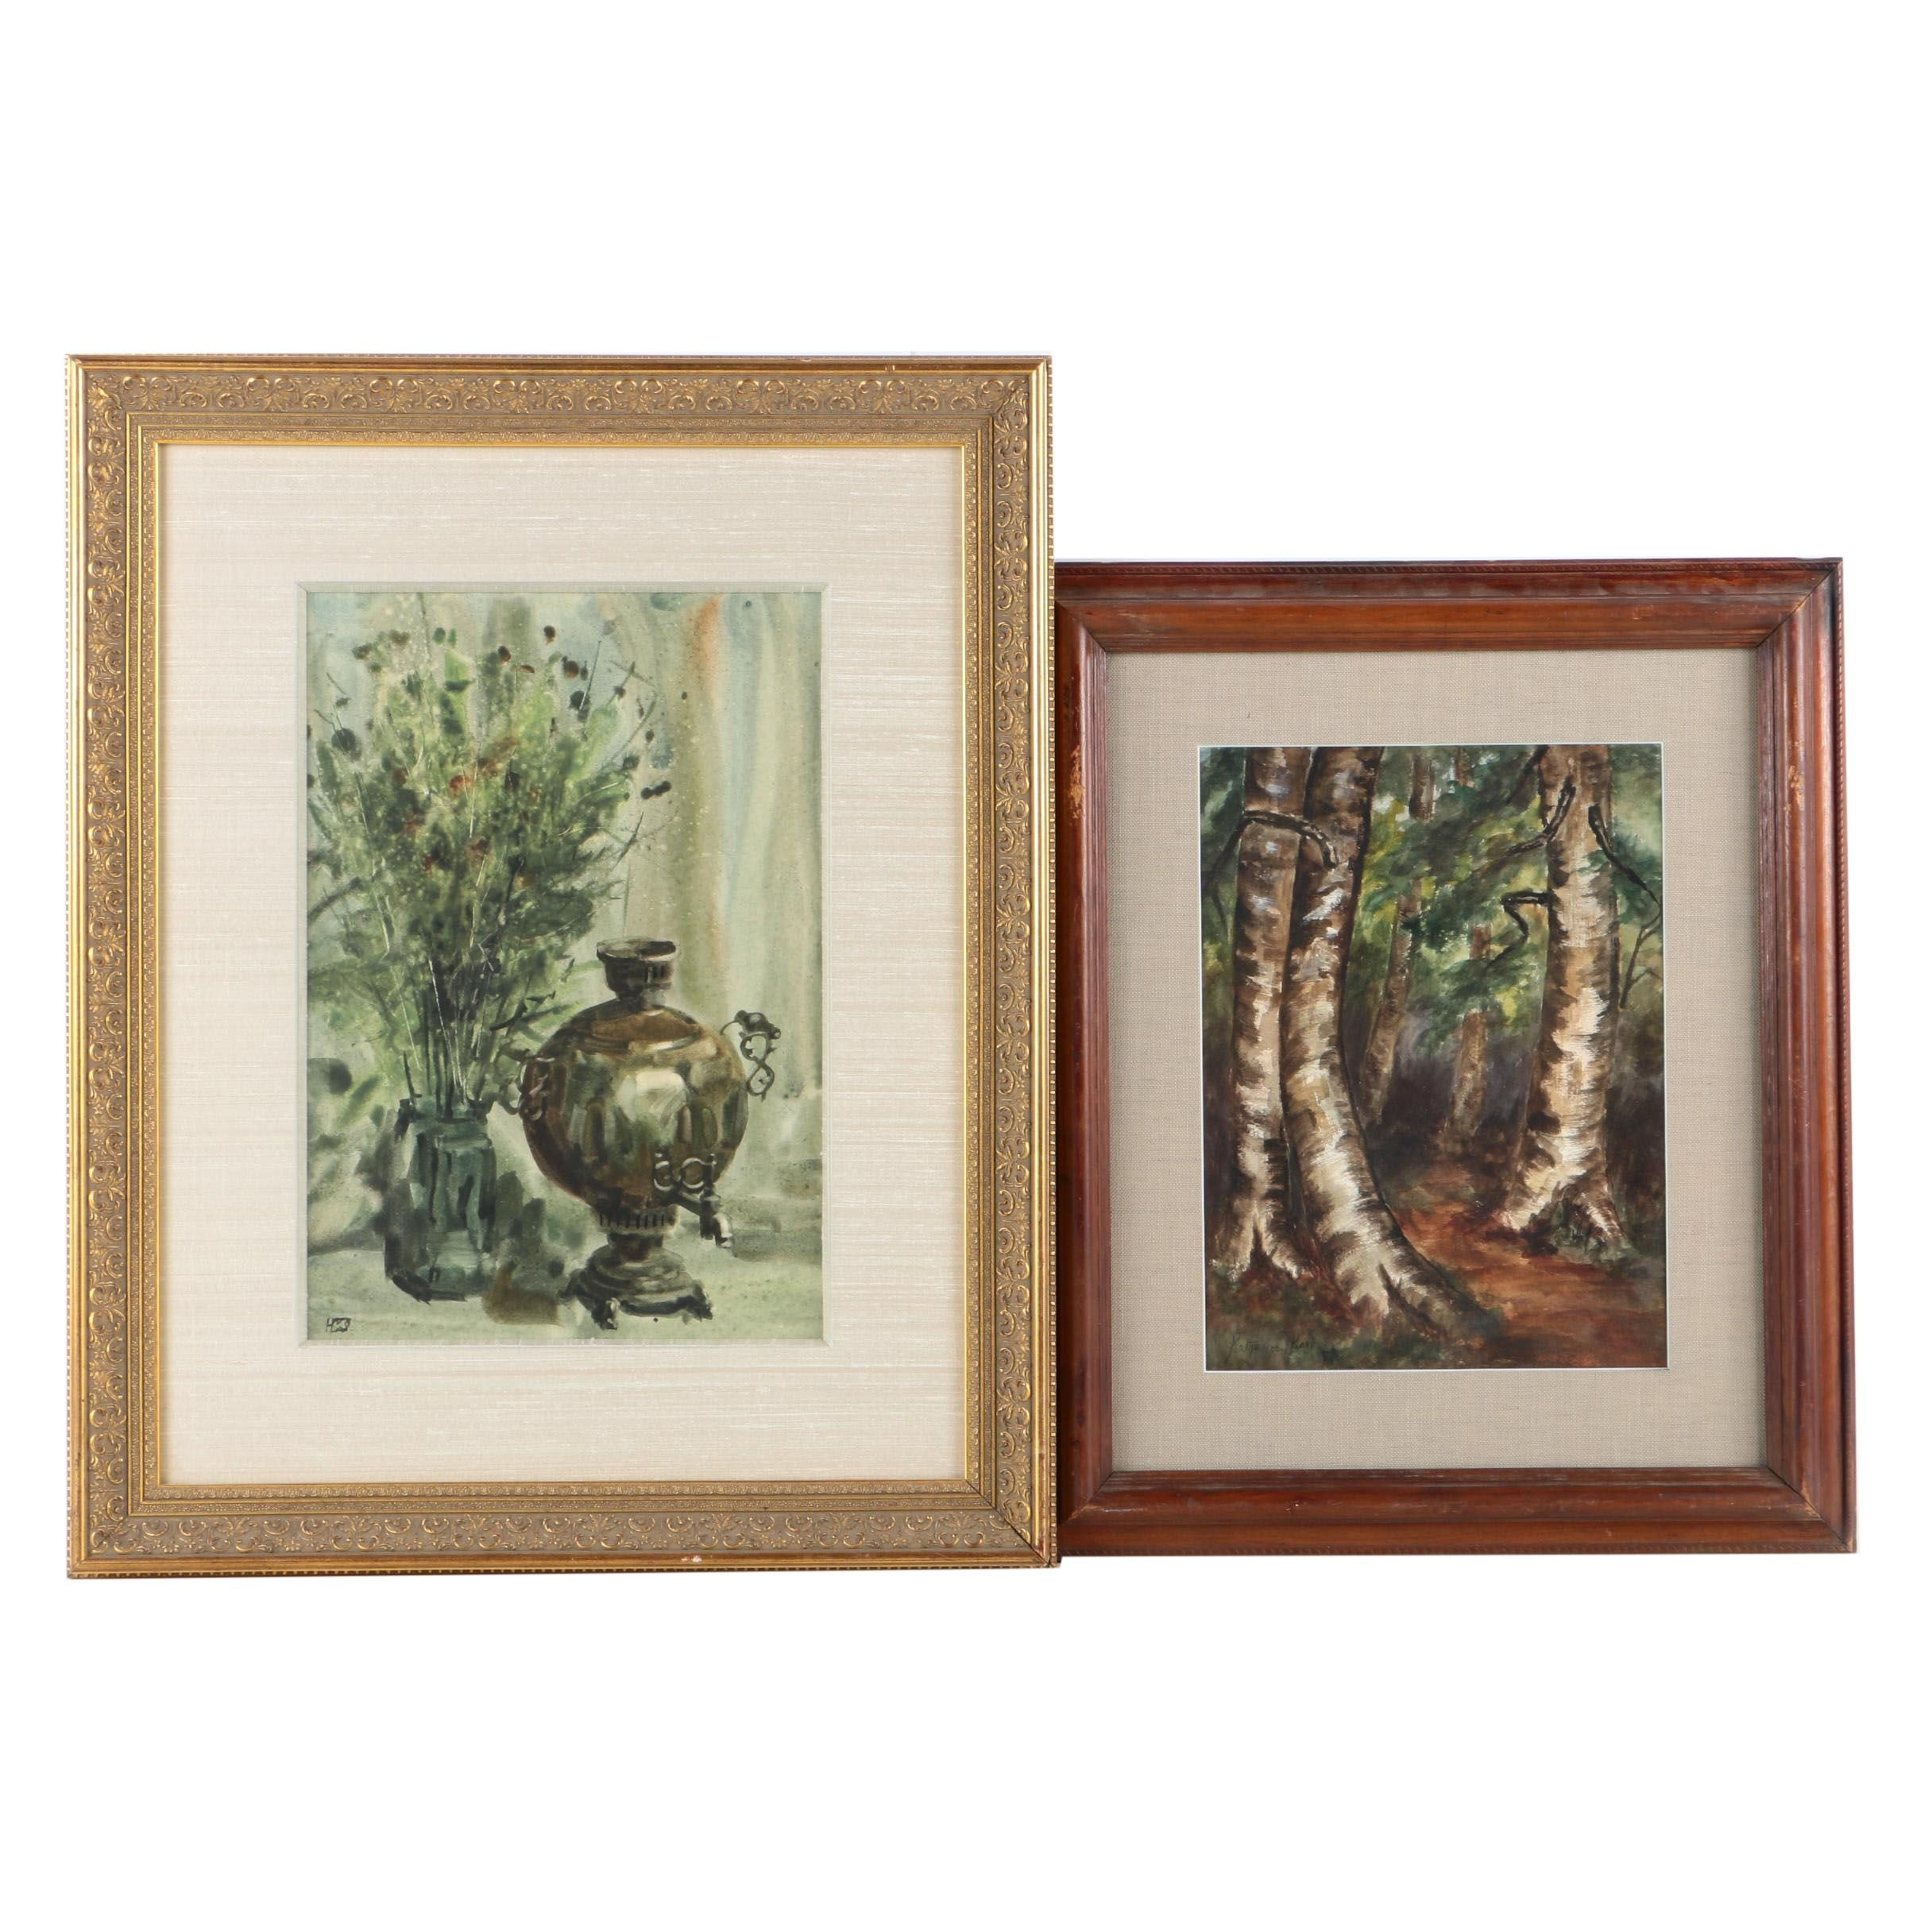 Watercolor Paintings on Paper of a Forest and Still Life